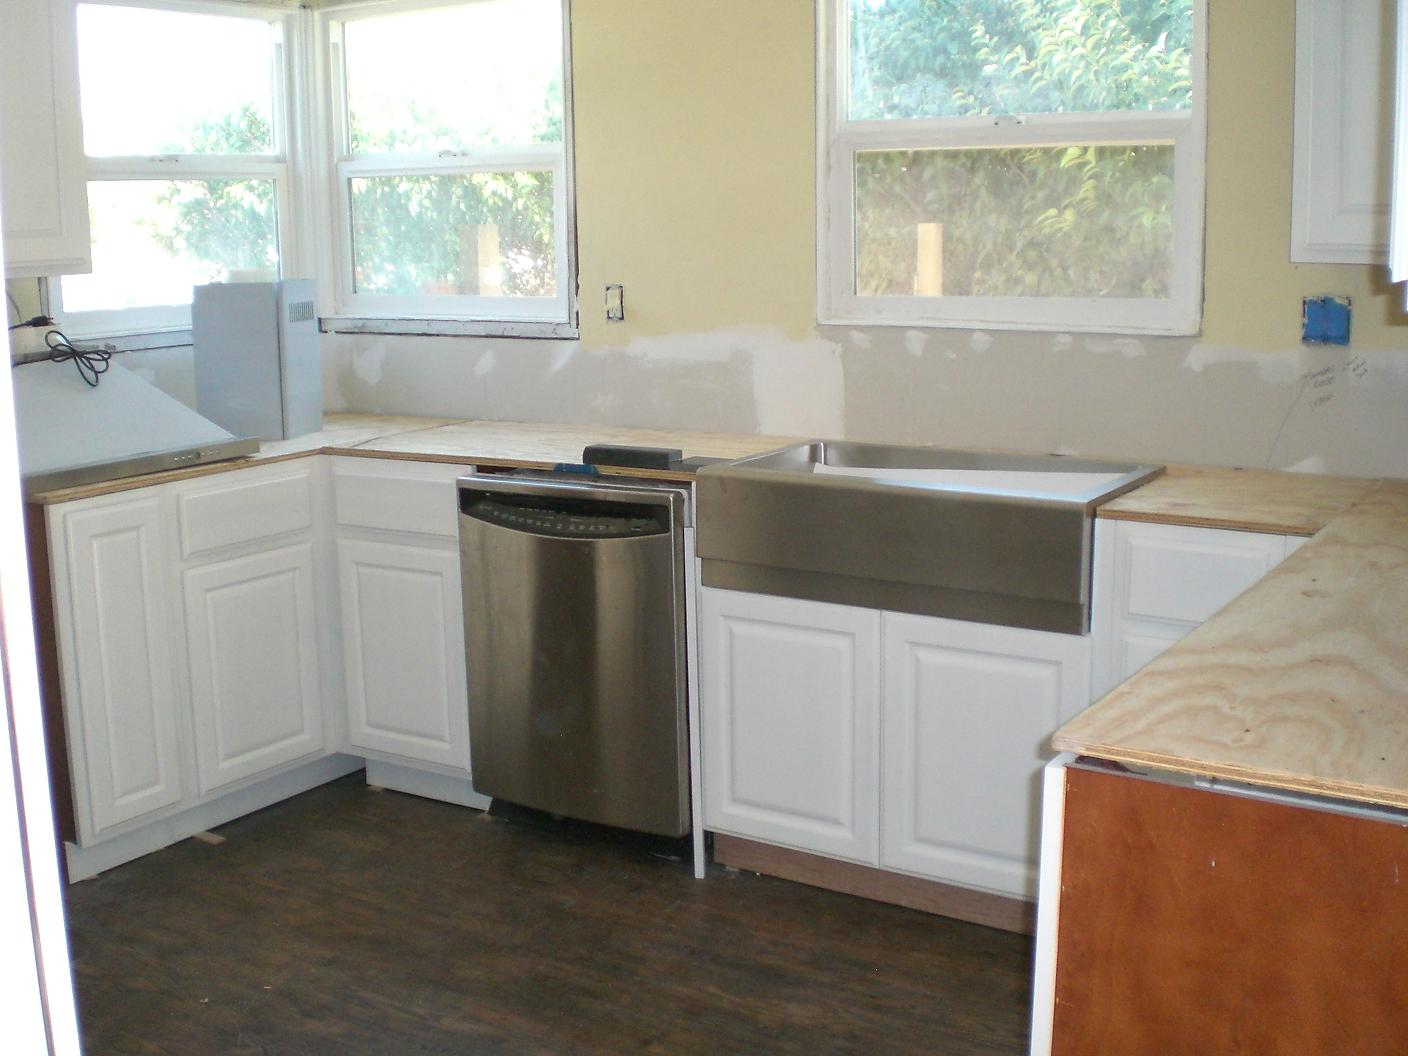 Stainless steel apron sink from overstock for only $350